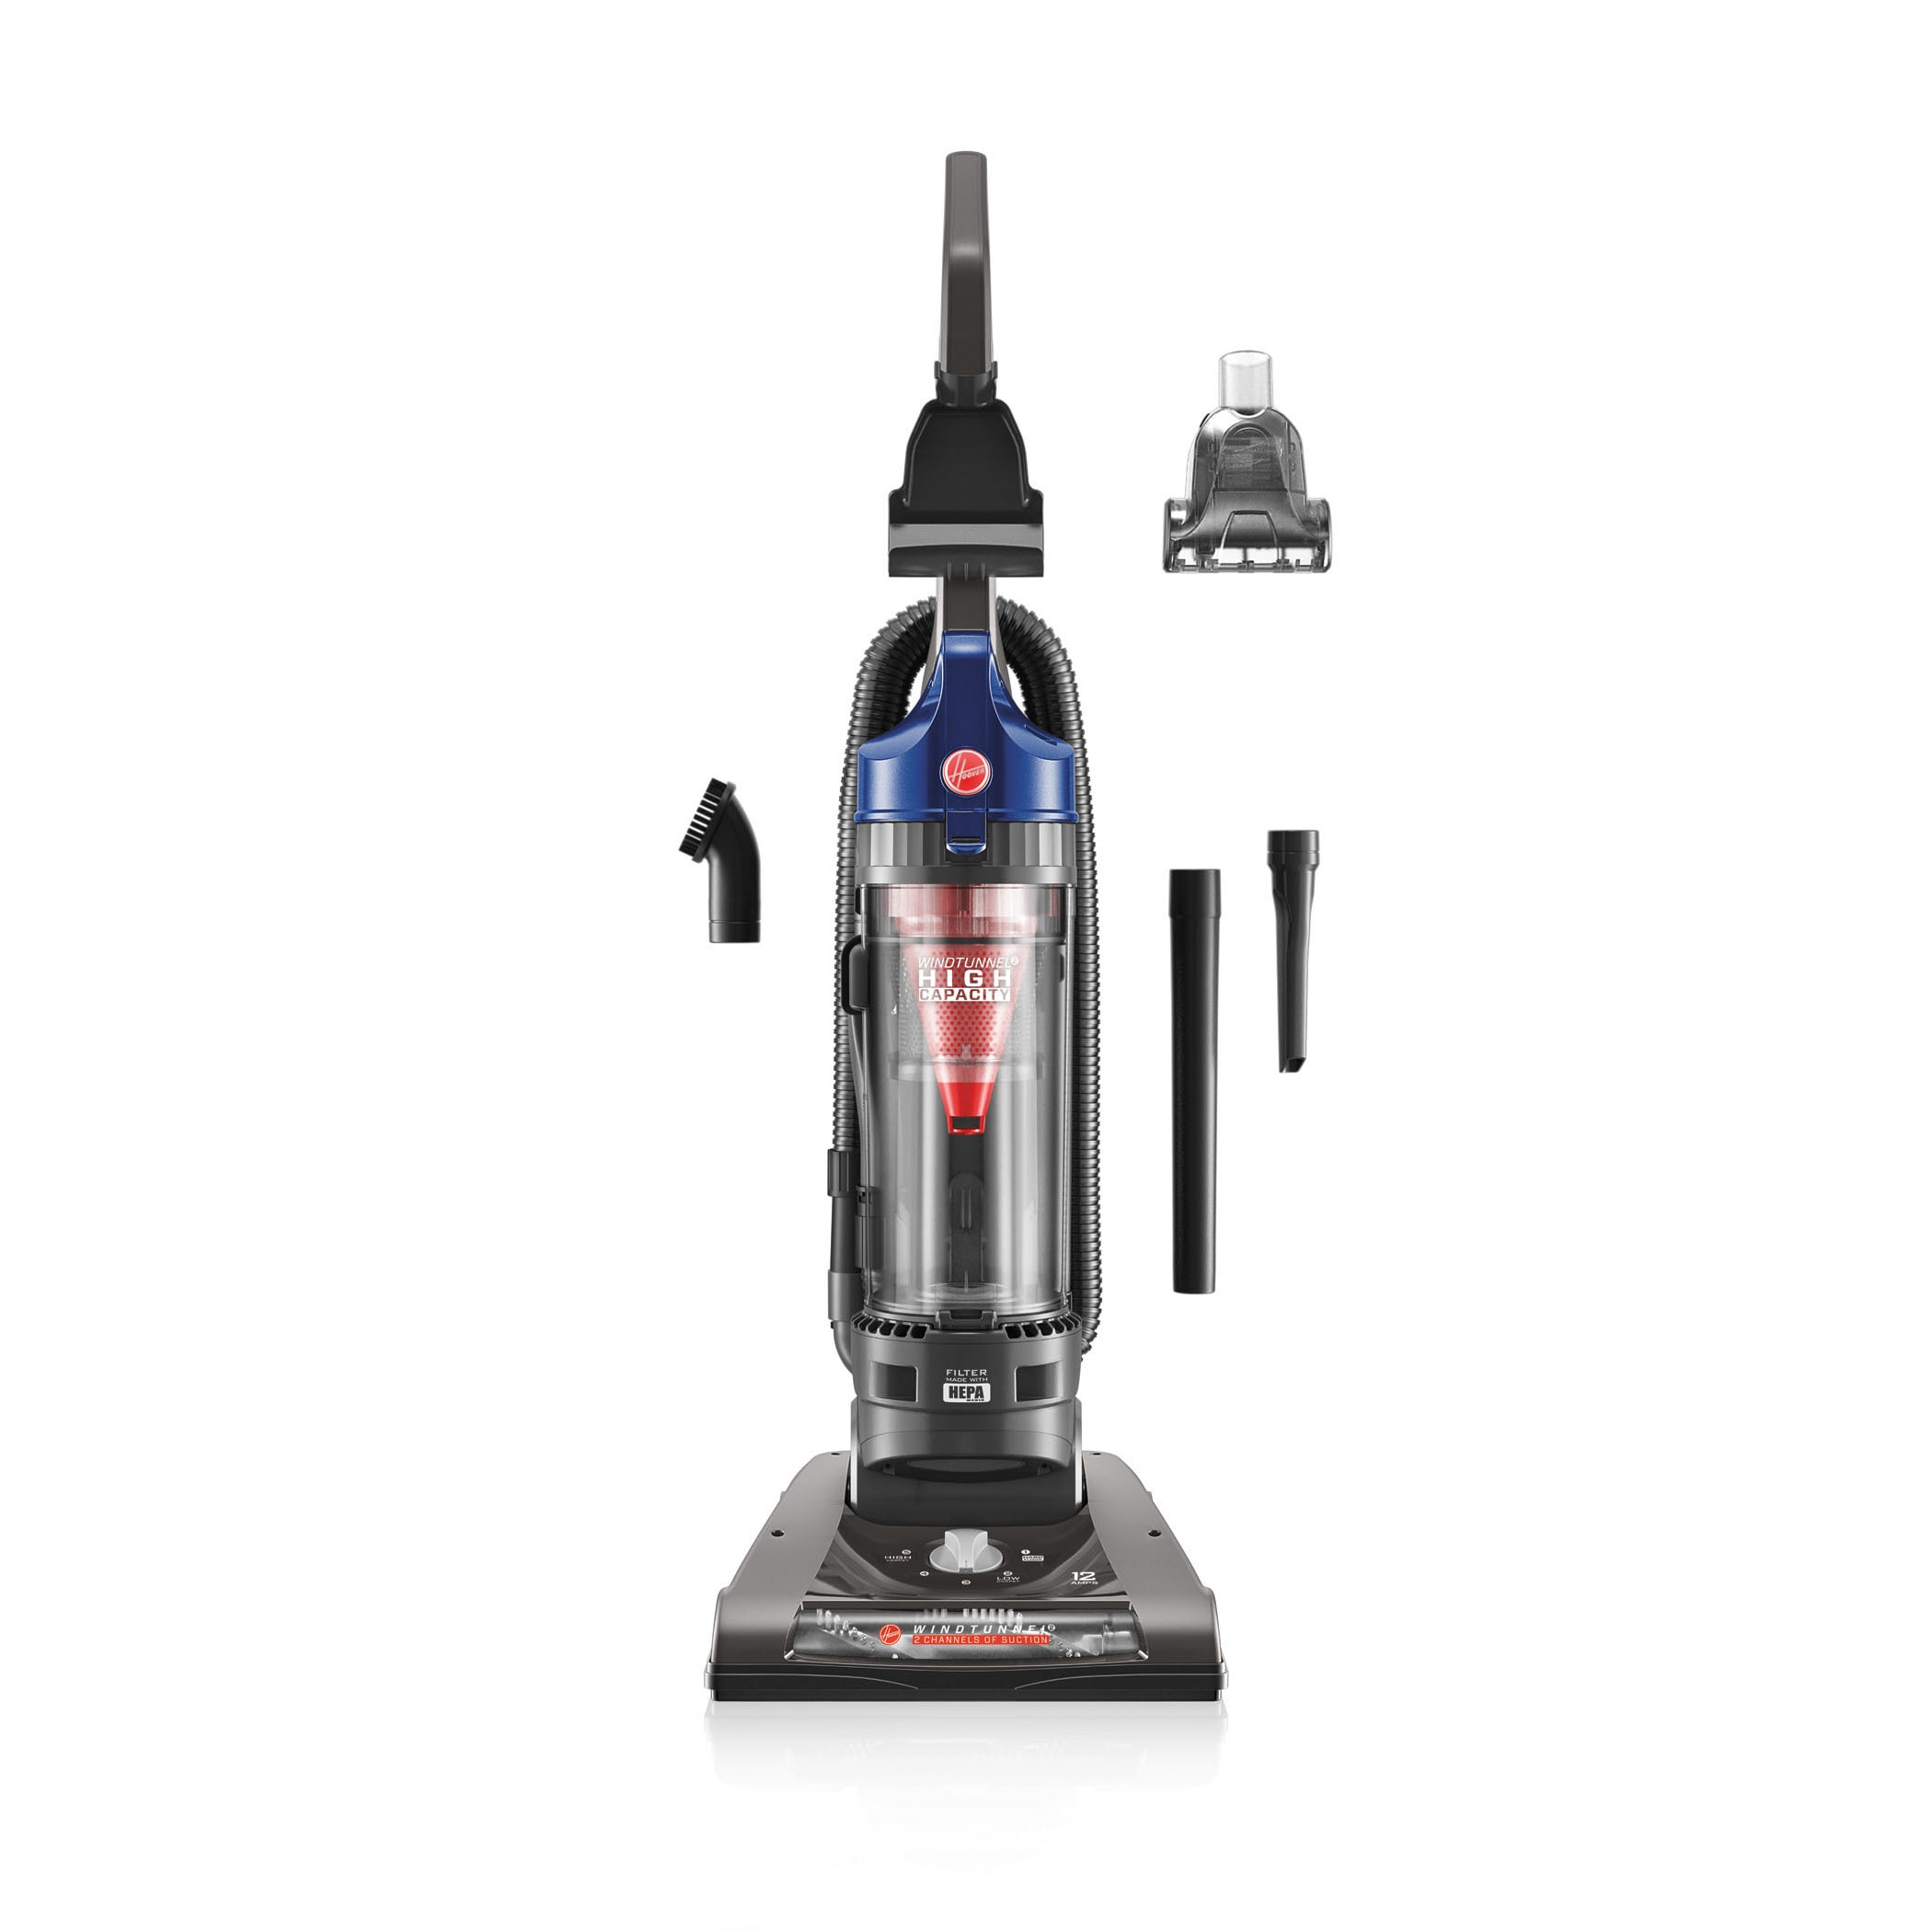 Garage Hoover Vacuum Hoover Uh70805 Windtunnel 2 High Capacity Upright Cobalt Blue Vacuum